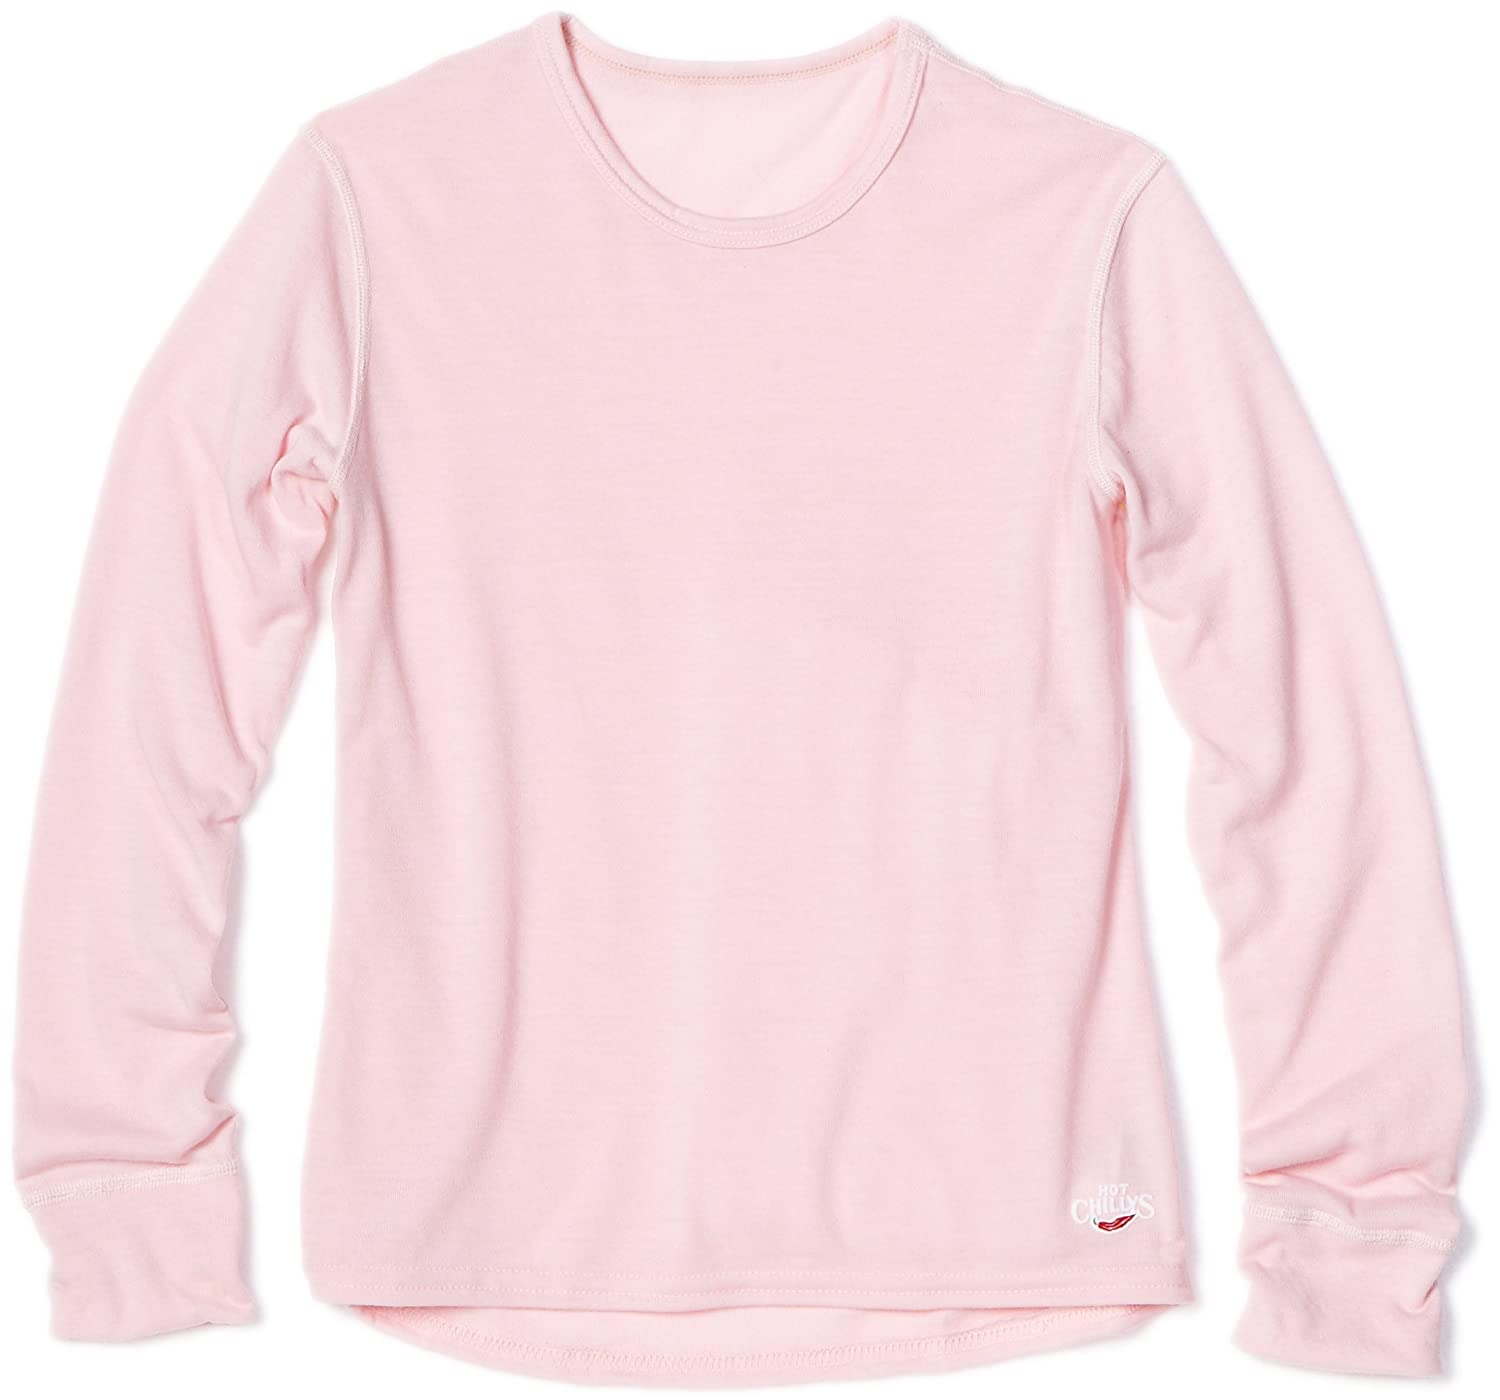 Hot Chillys Youth Midweight Crewneck Top HC9856